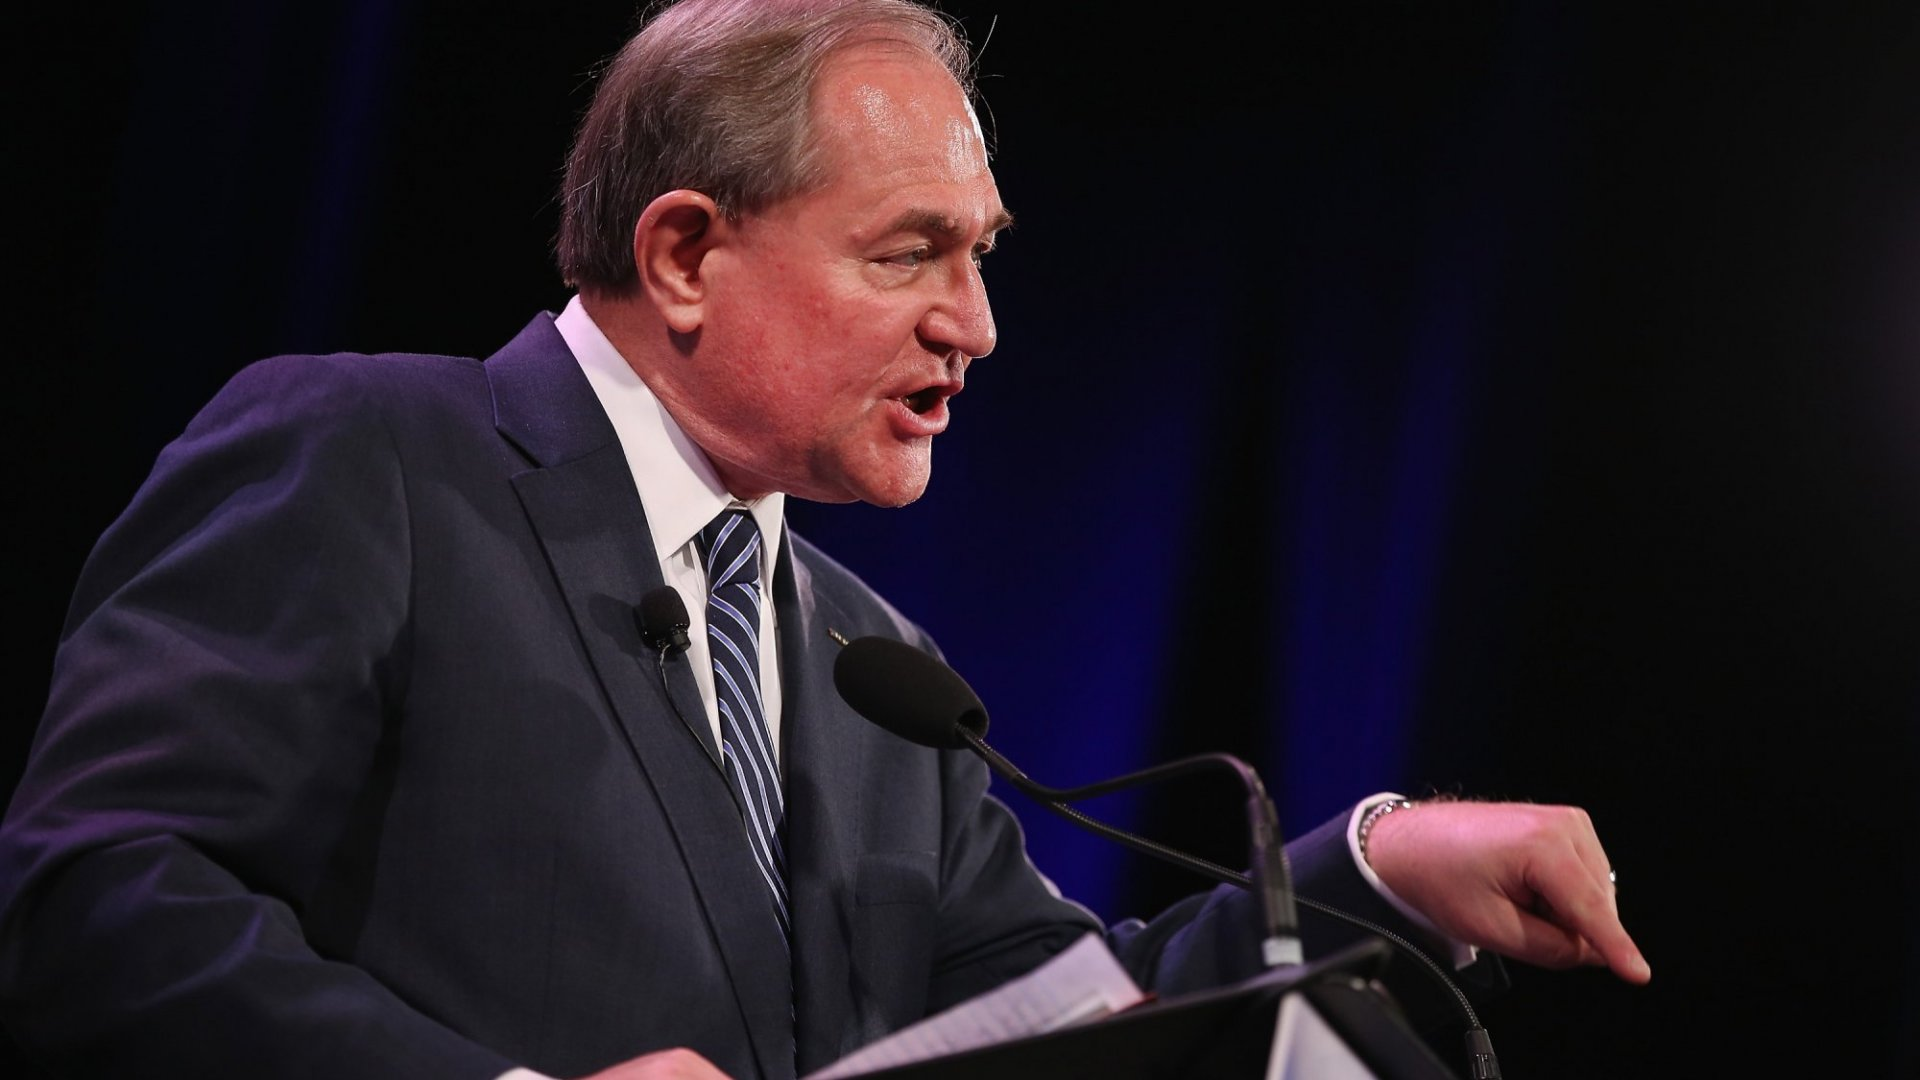 Former Virginia Governor Jim Gilmore will run for president in the 2016 campaign.